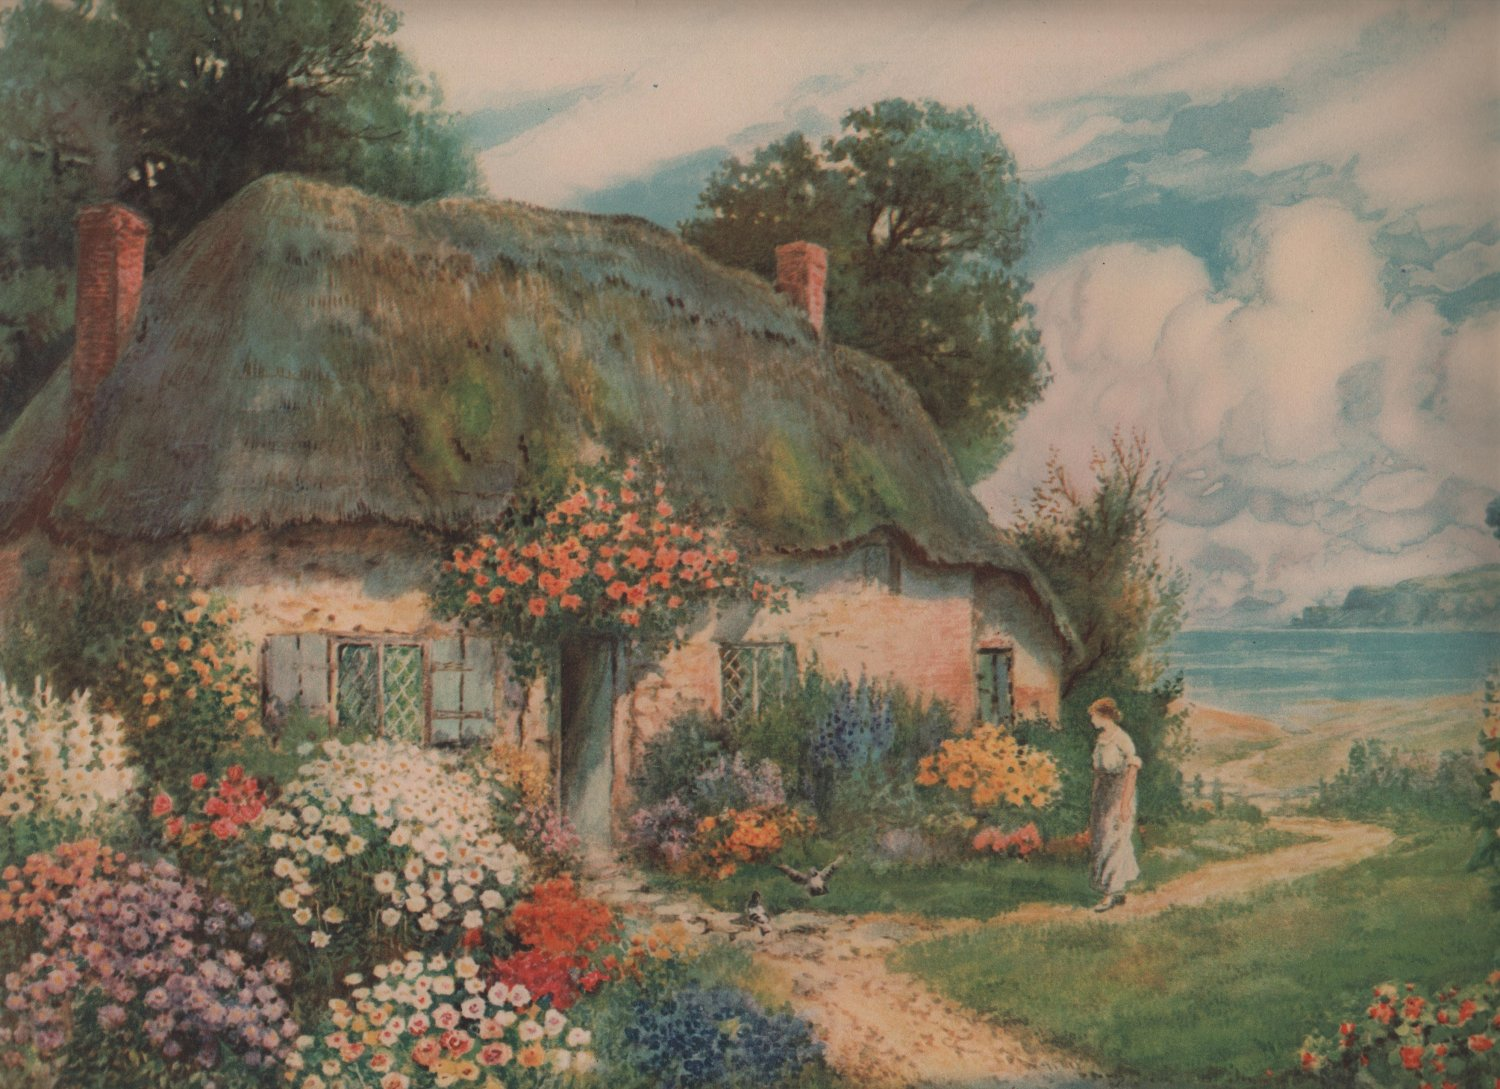 A Cottage By The Sea by T. Noelsmith, Pictorial Review Color Print c.1925